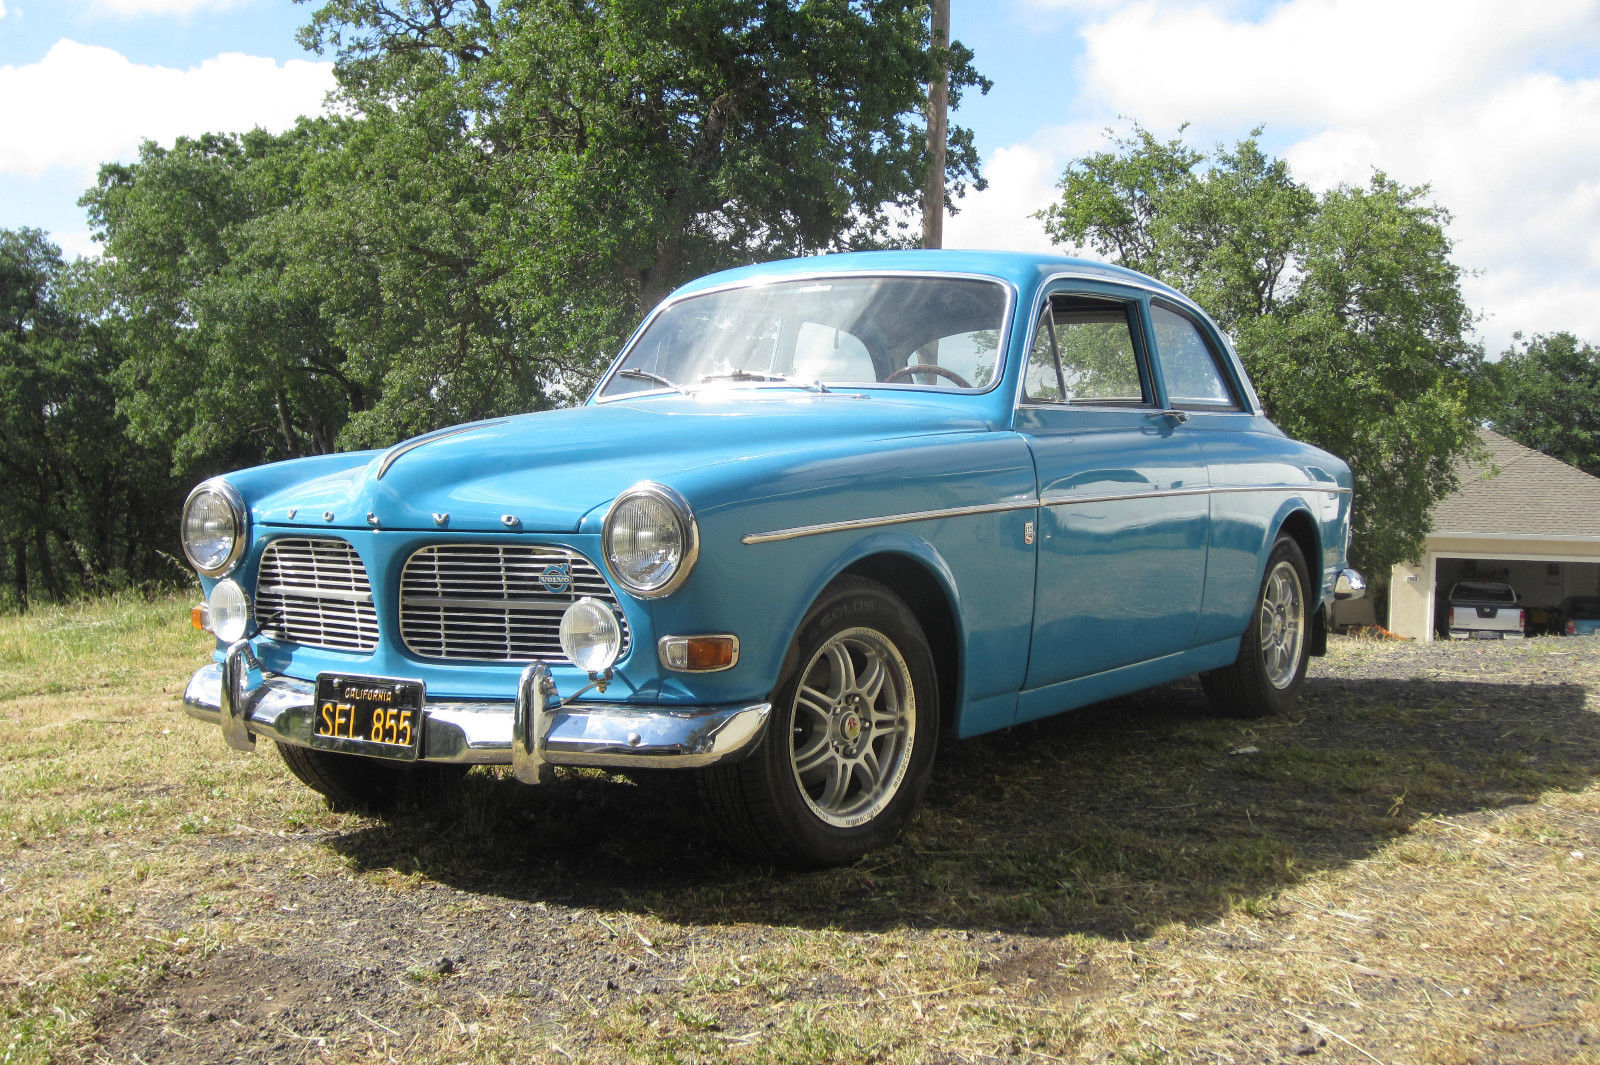 Almost Finished: Bargain 1966 Volvo Other 122S | Bring a Trailer